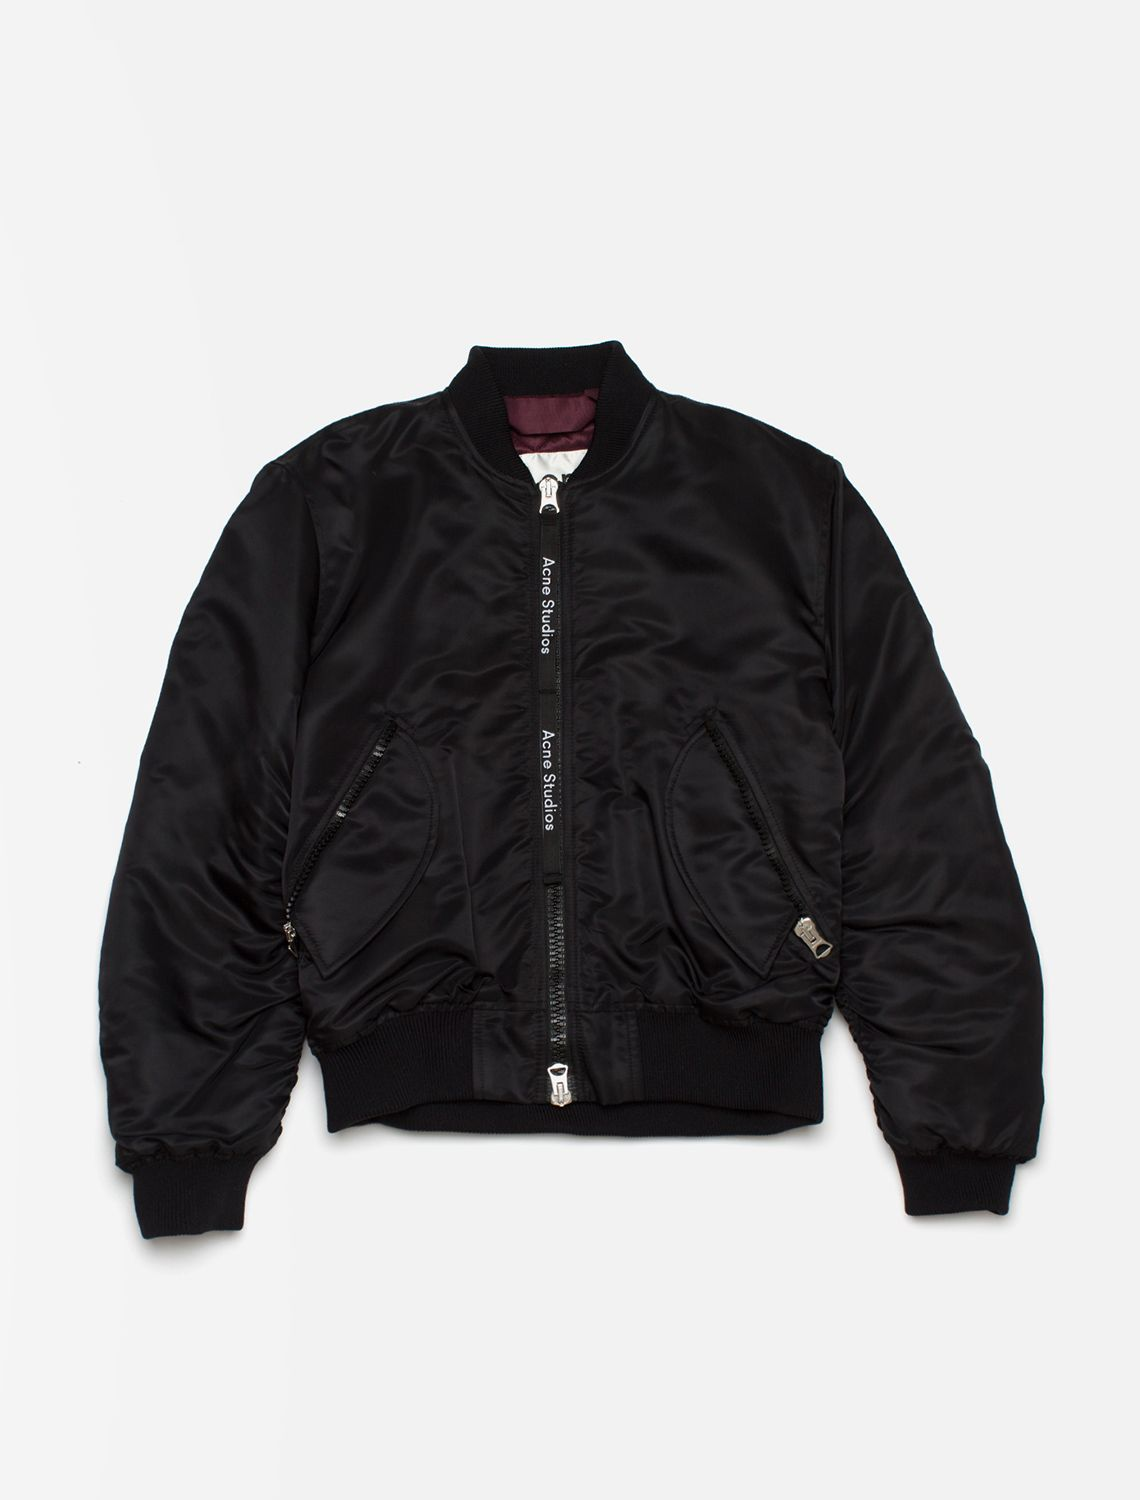 110-12a176-900-clea-bomber-1_1